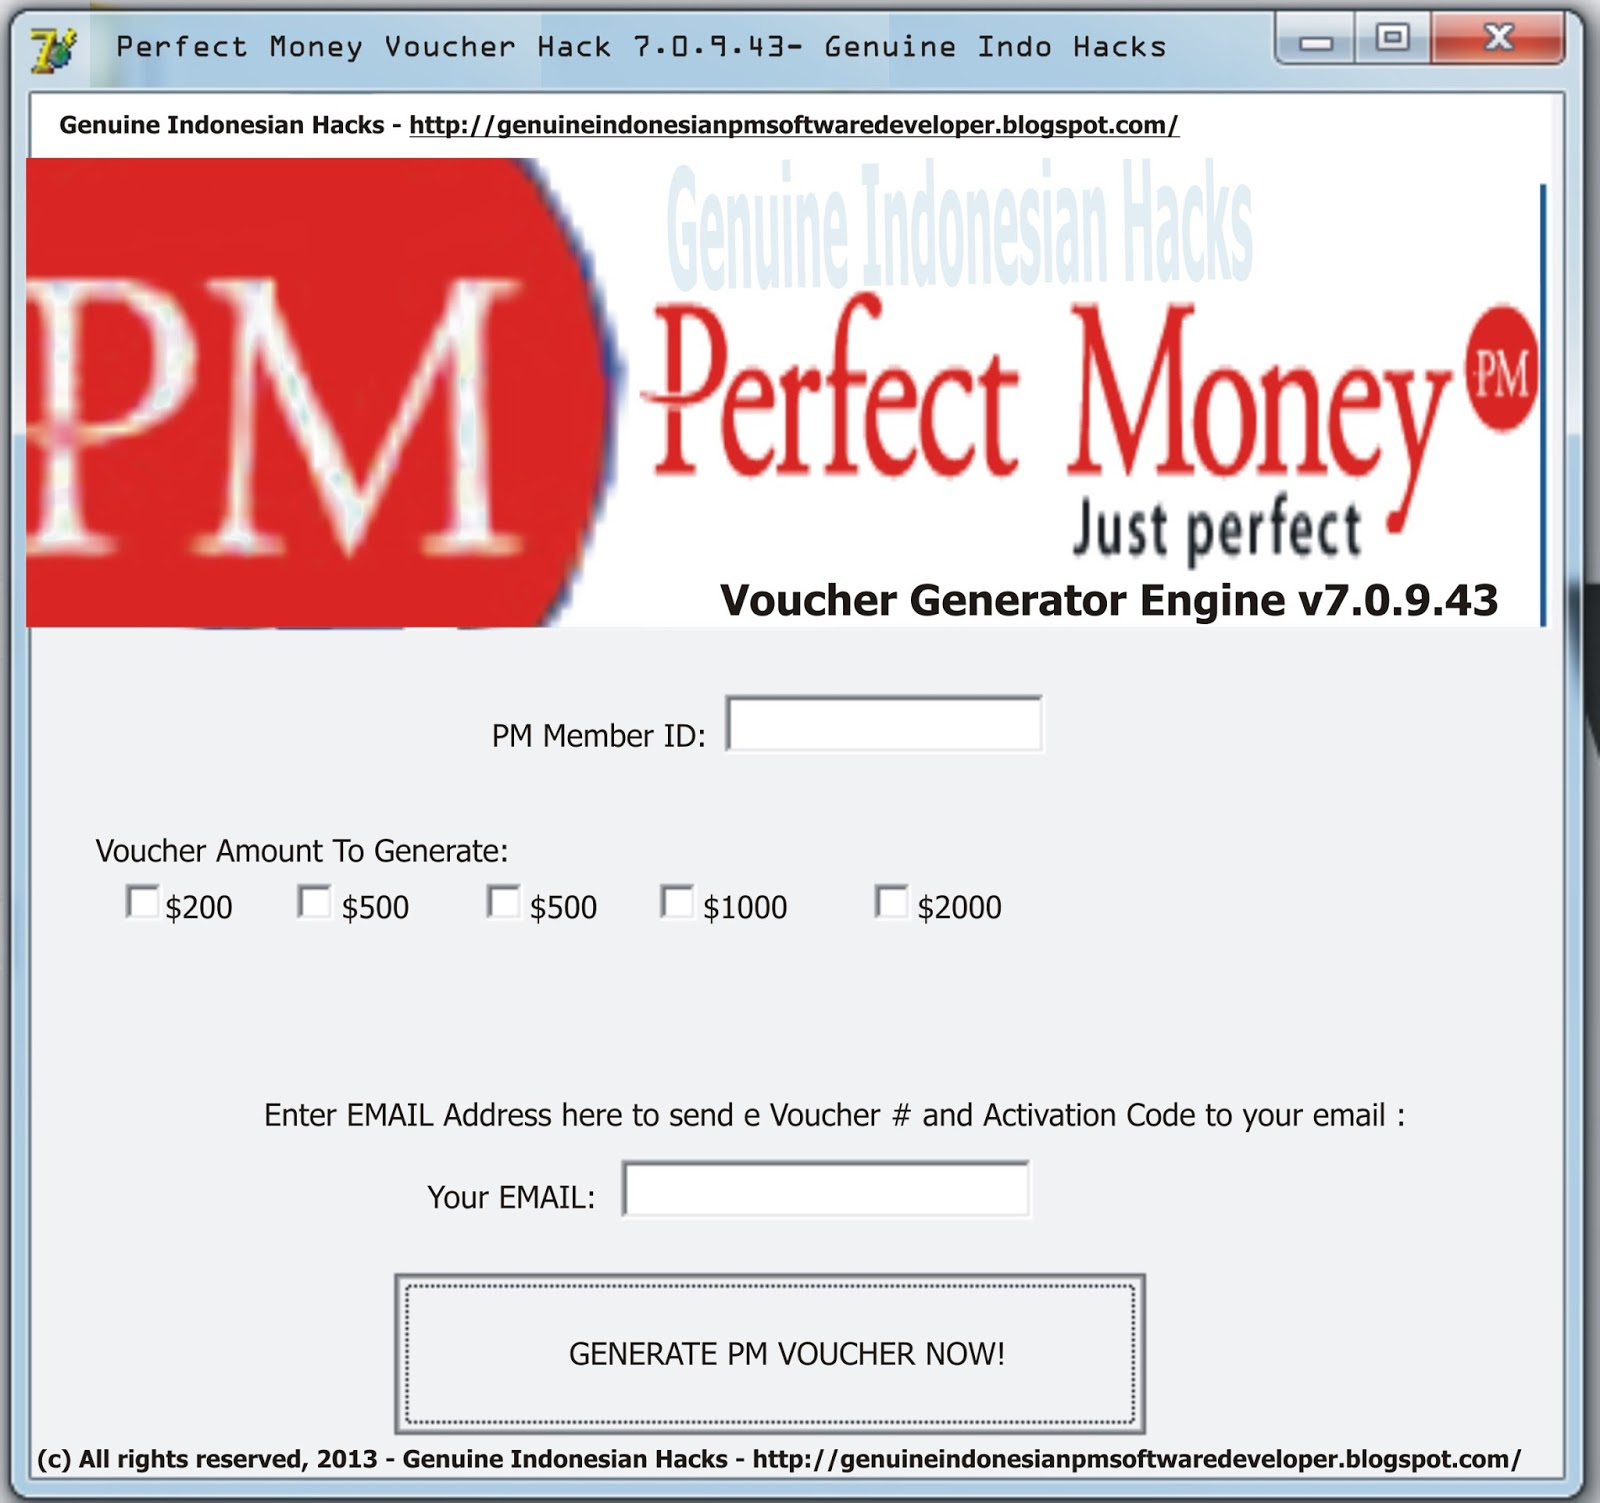 Binary options that accept perfect money